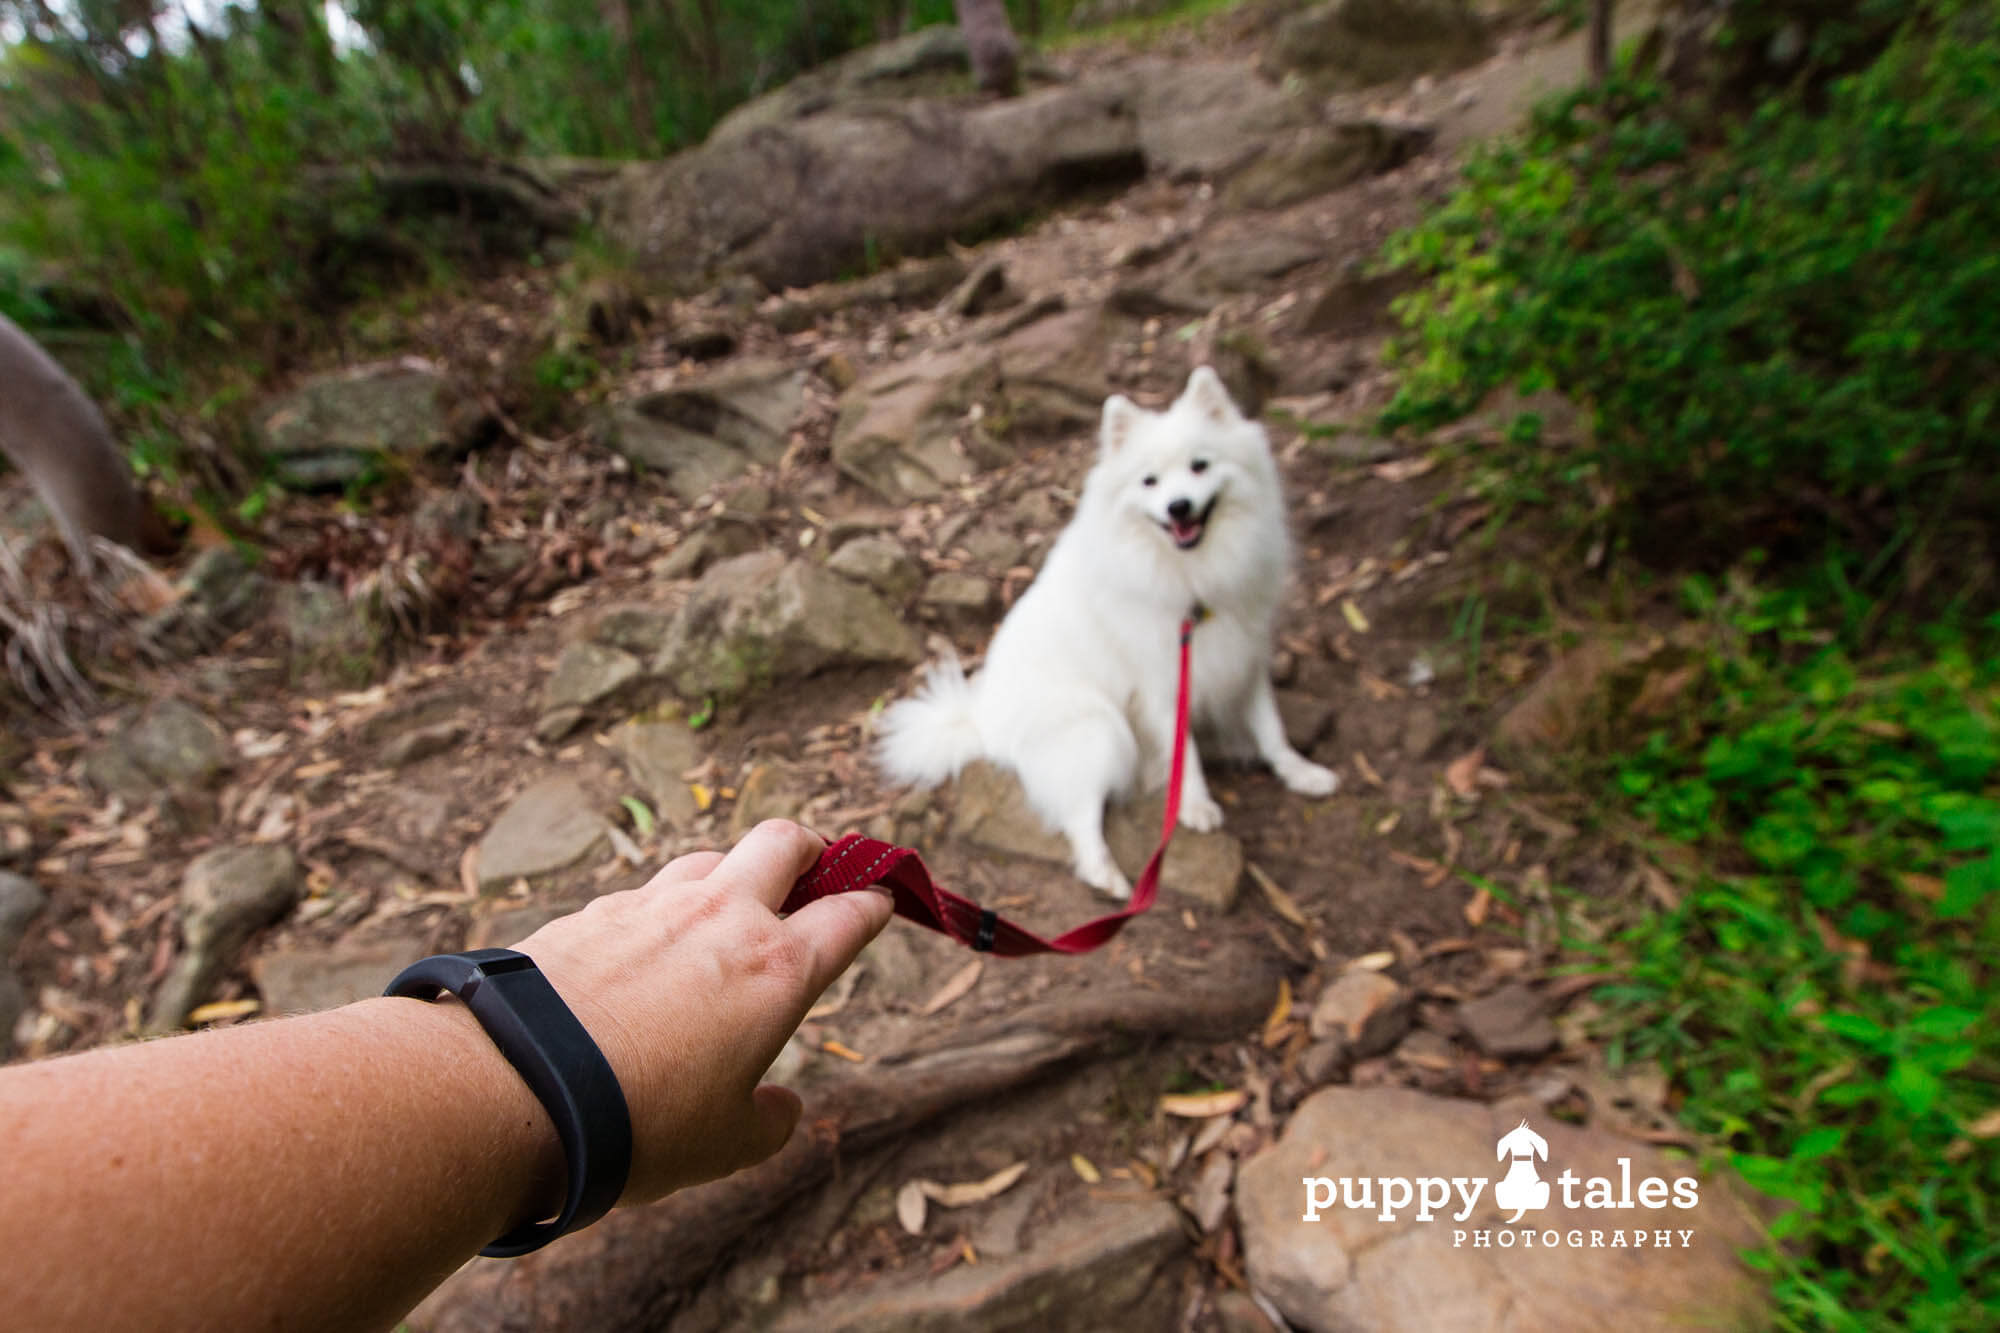 Hiking with Keiko the Japanese Spitz is a great way to stay fit and healthy